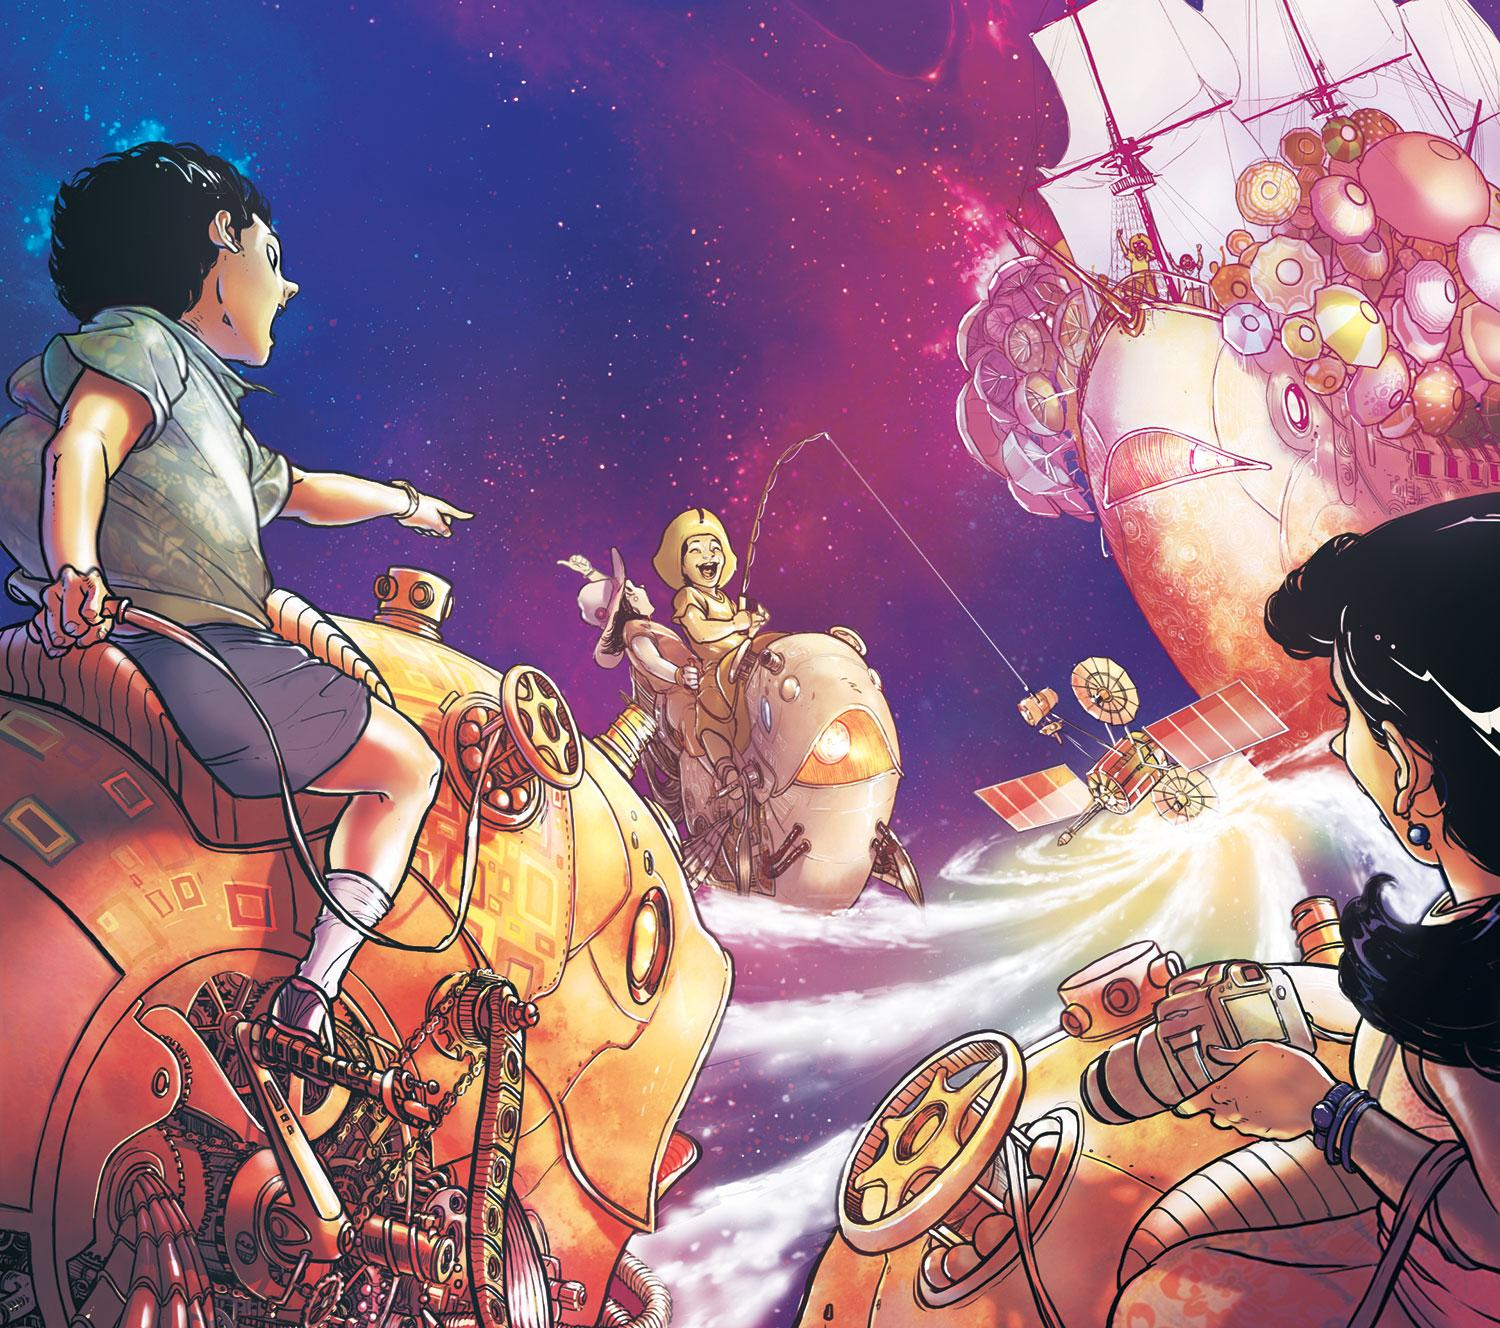 Fantasy art scene of children riding mechanical creatures in front of a ship, in the clouds